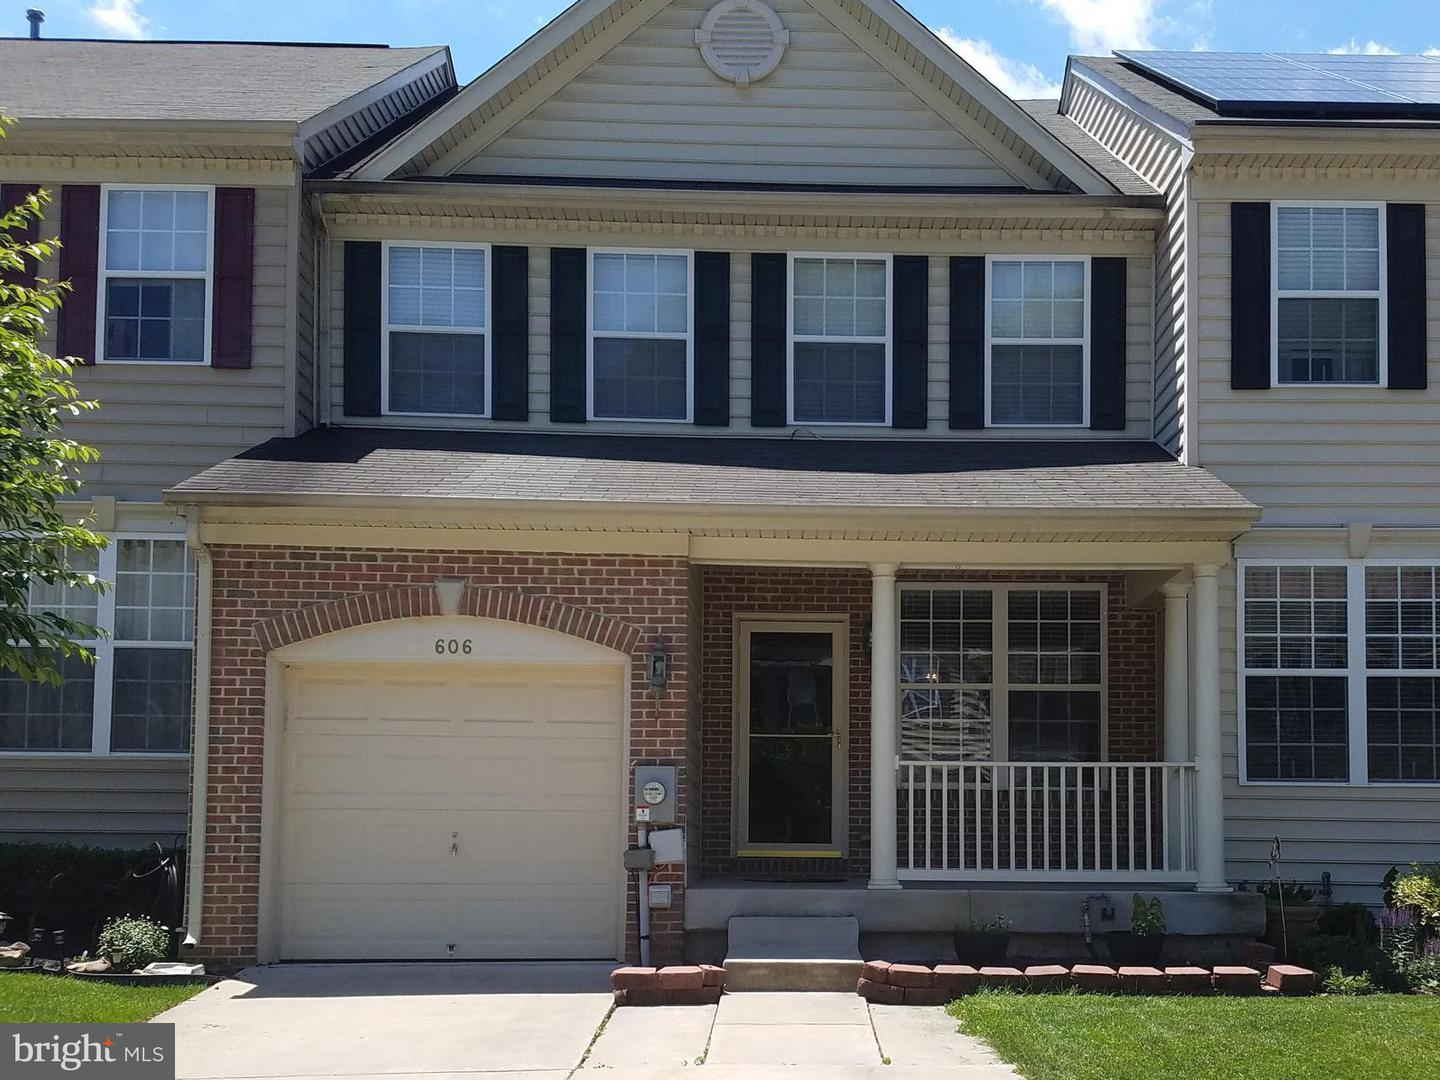 Other Residential for Rent at 606 Rustic Ct Perryville, Maryland 21903 United States